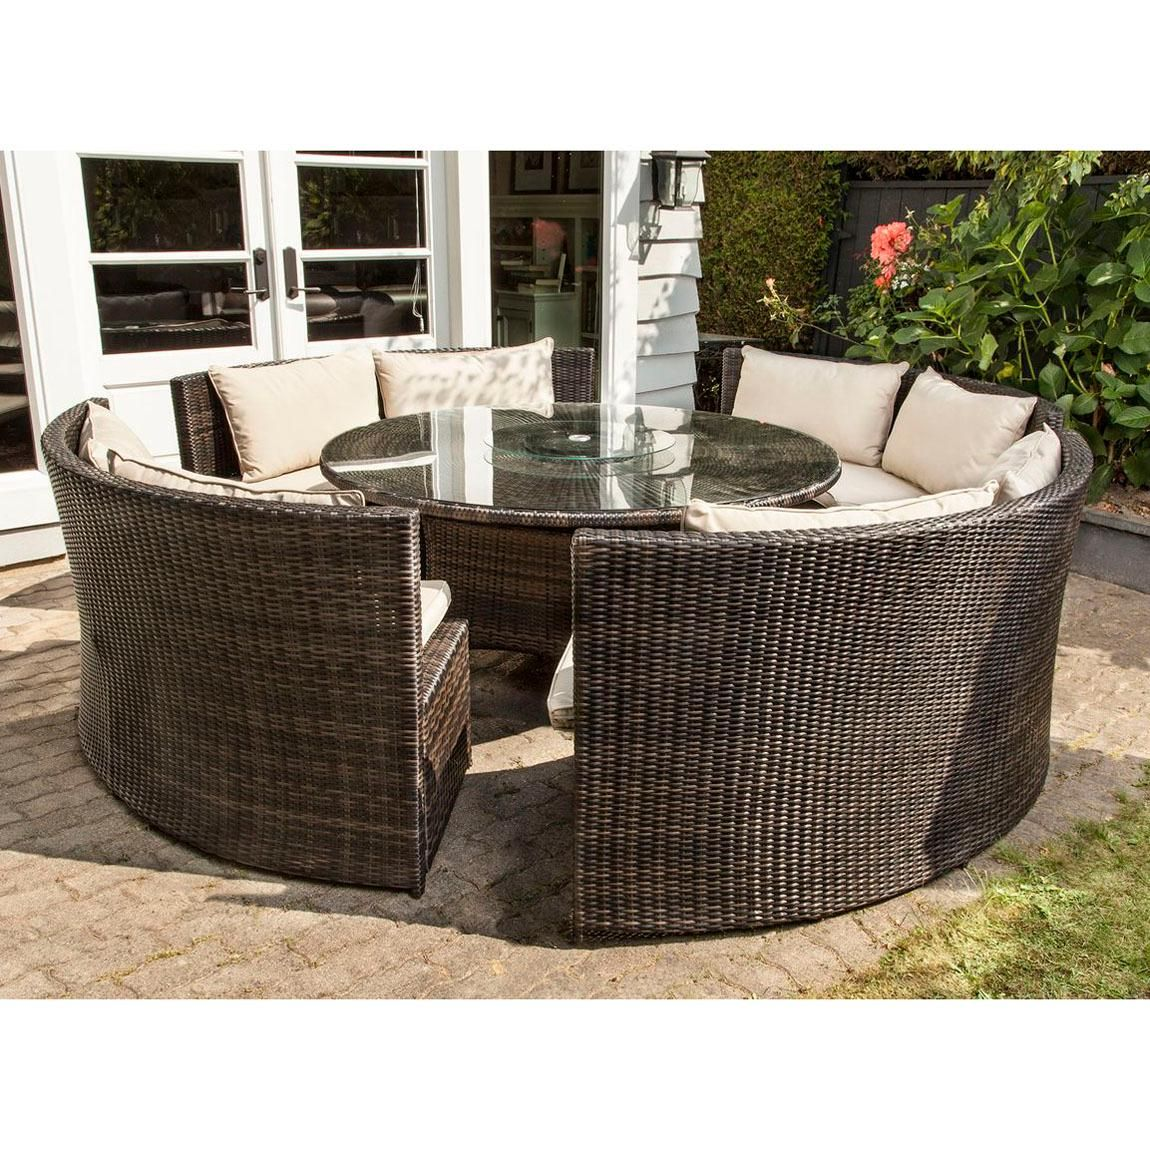 A Handmaid 5 Piece Outdoor Curved Bench Dining Set That